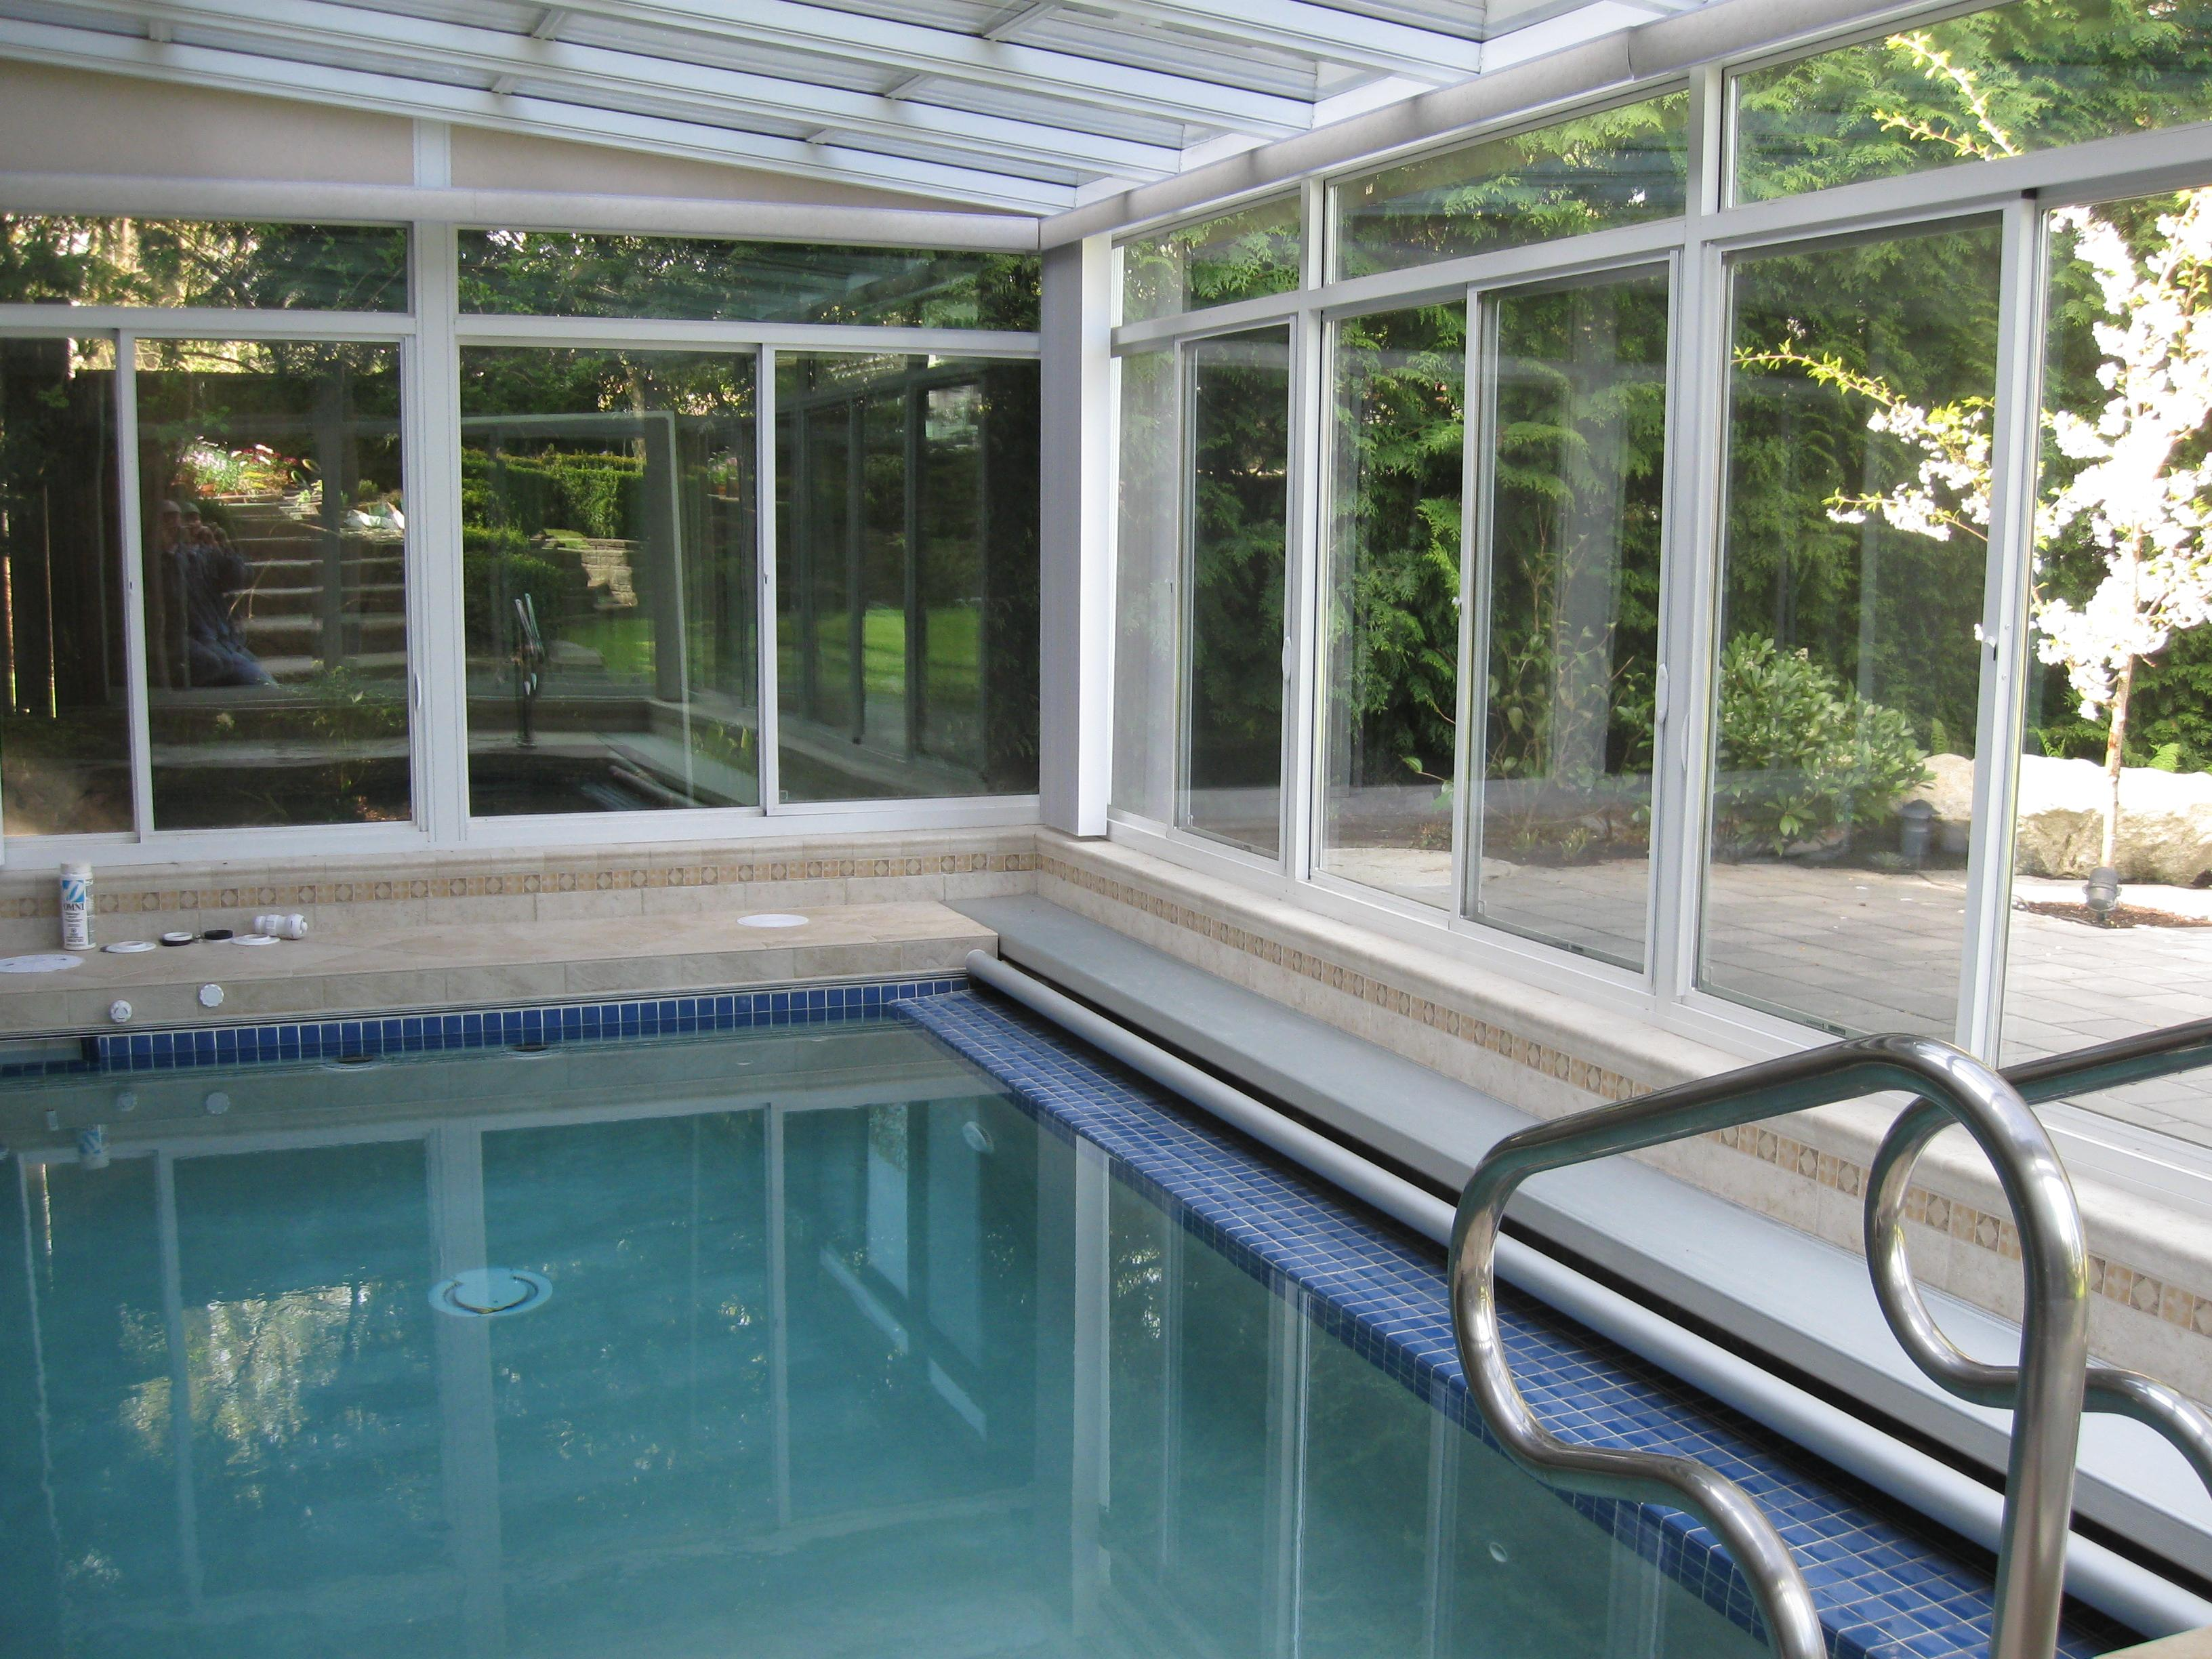 Four Seasons Sunrooms in Port Coquitlam: This customer had us build his first sunroom off his living room, one year later he wanted us to build a fitness room including this lap pool covered by a 2nd sunroom. We took care of all aspects of the project from permit to painting.